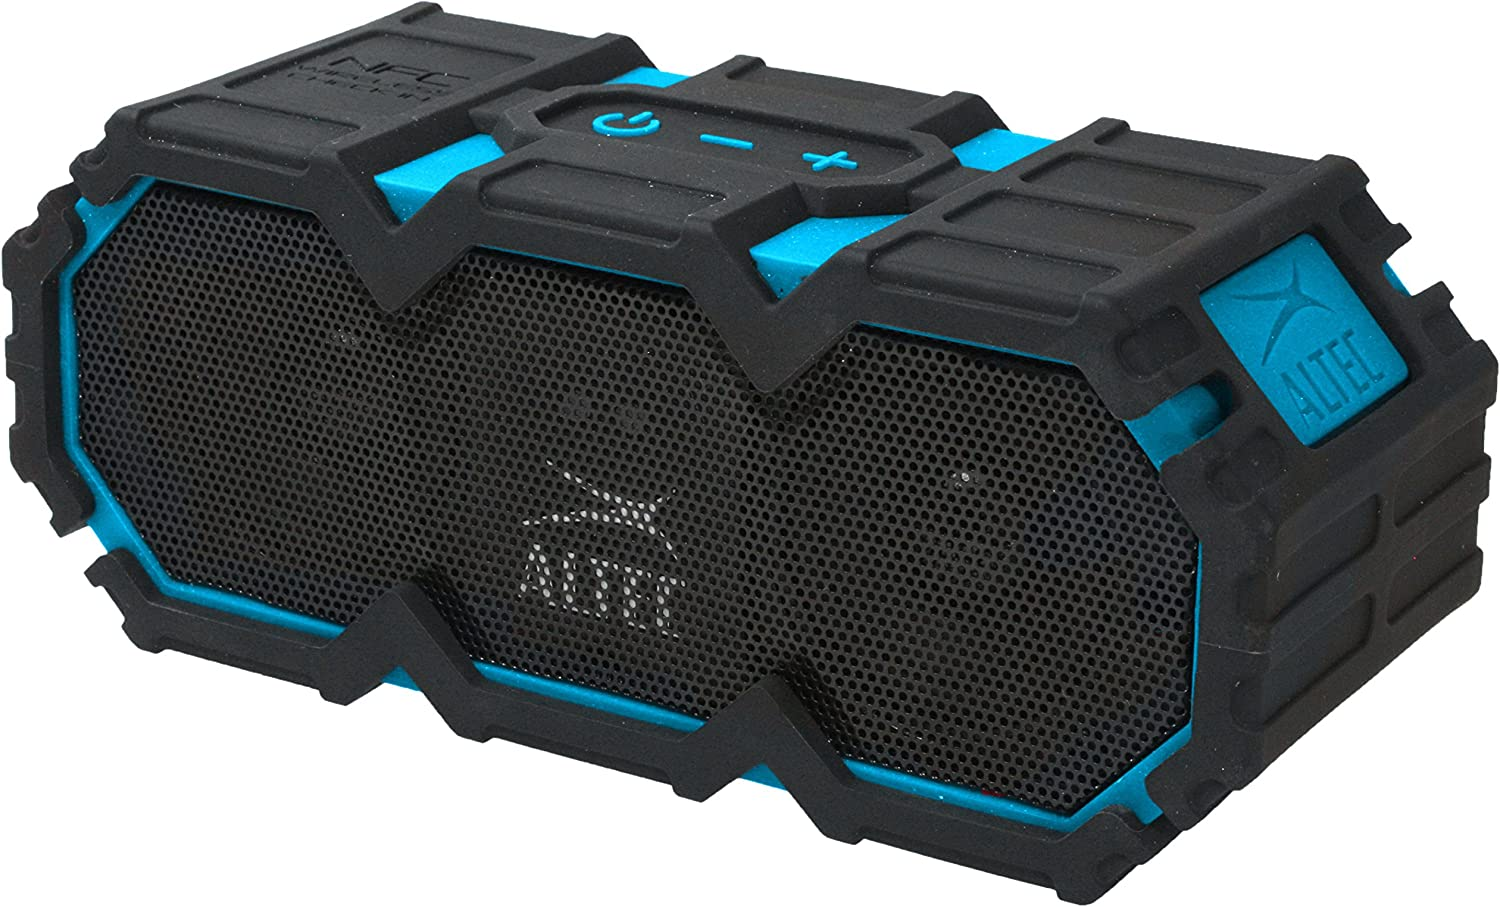 Altec Lansing iMW10 Life Jacket 10 Bluetooth Speaker Waterproof Wireless  Bluetooth Speaker, Hands-Free Extended Battery Outdoor Speaker,